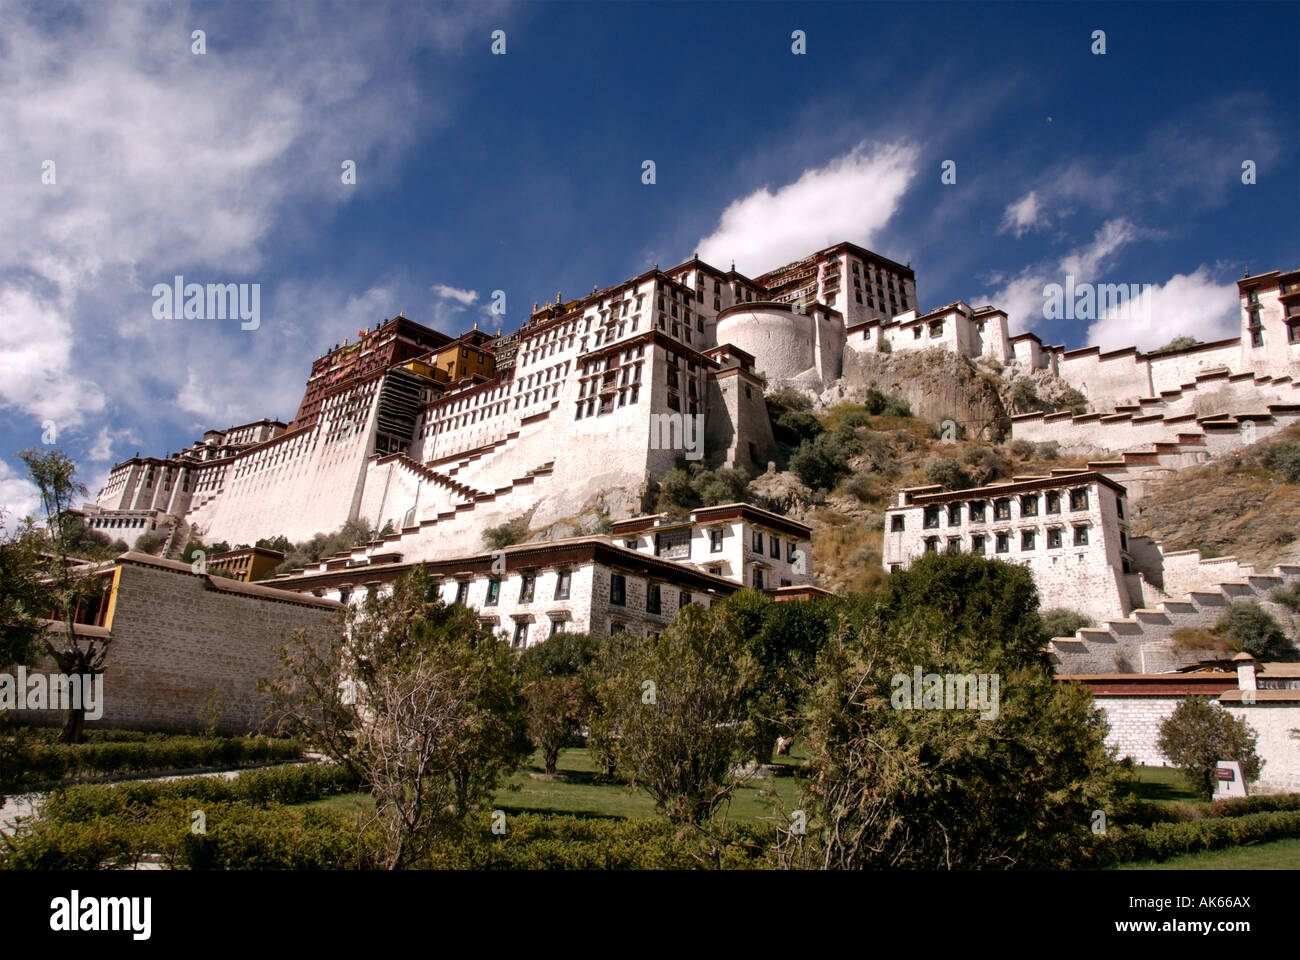 The Potala Palace in Lhasa, Tibet. Traditionally the home of the Dalai Lama, now converted to a museum - Stock Image